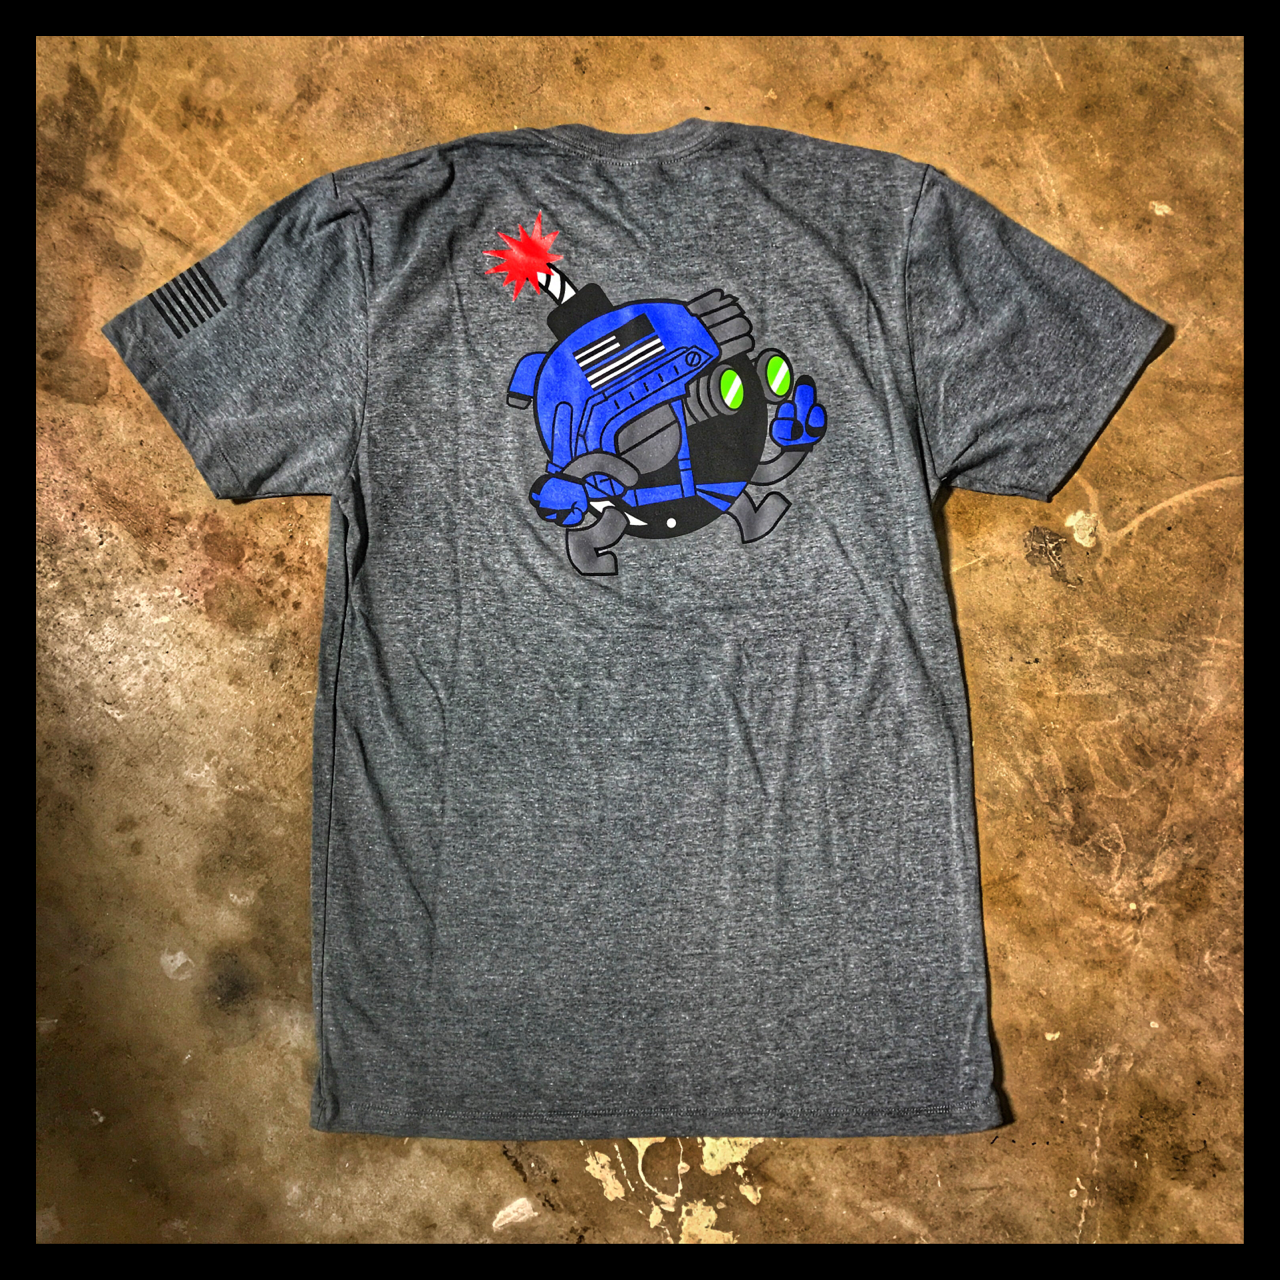 """ALL NEW"" A DUMP BOX OFFICIAL 'THIN BLUE LINE' ZERO FUCKS CHUCK ZFC OPERATOR T-SHIRT"